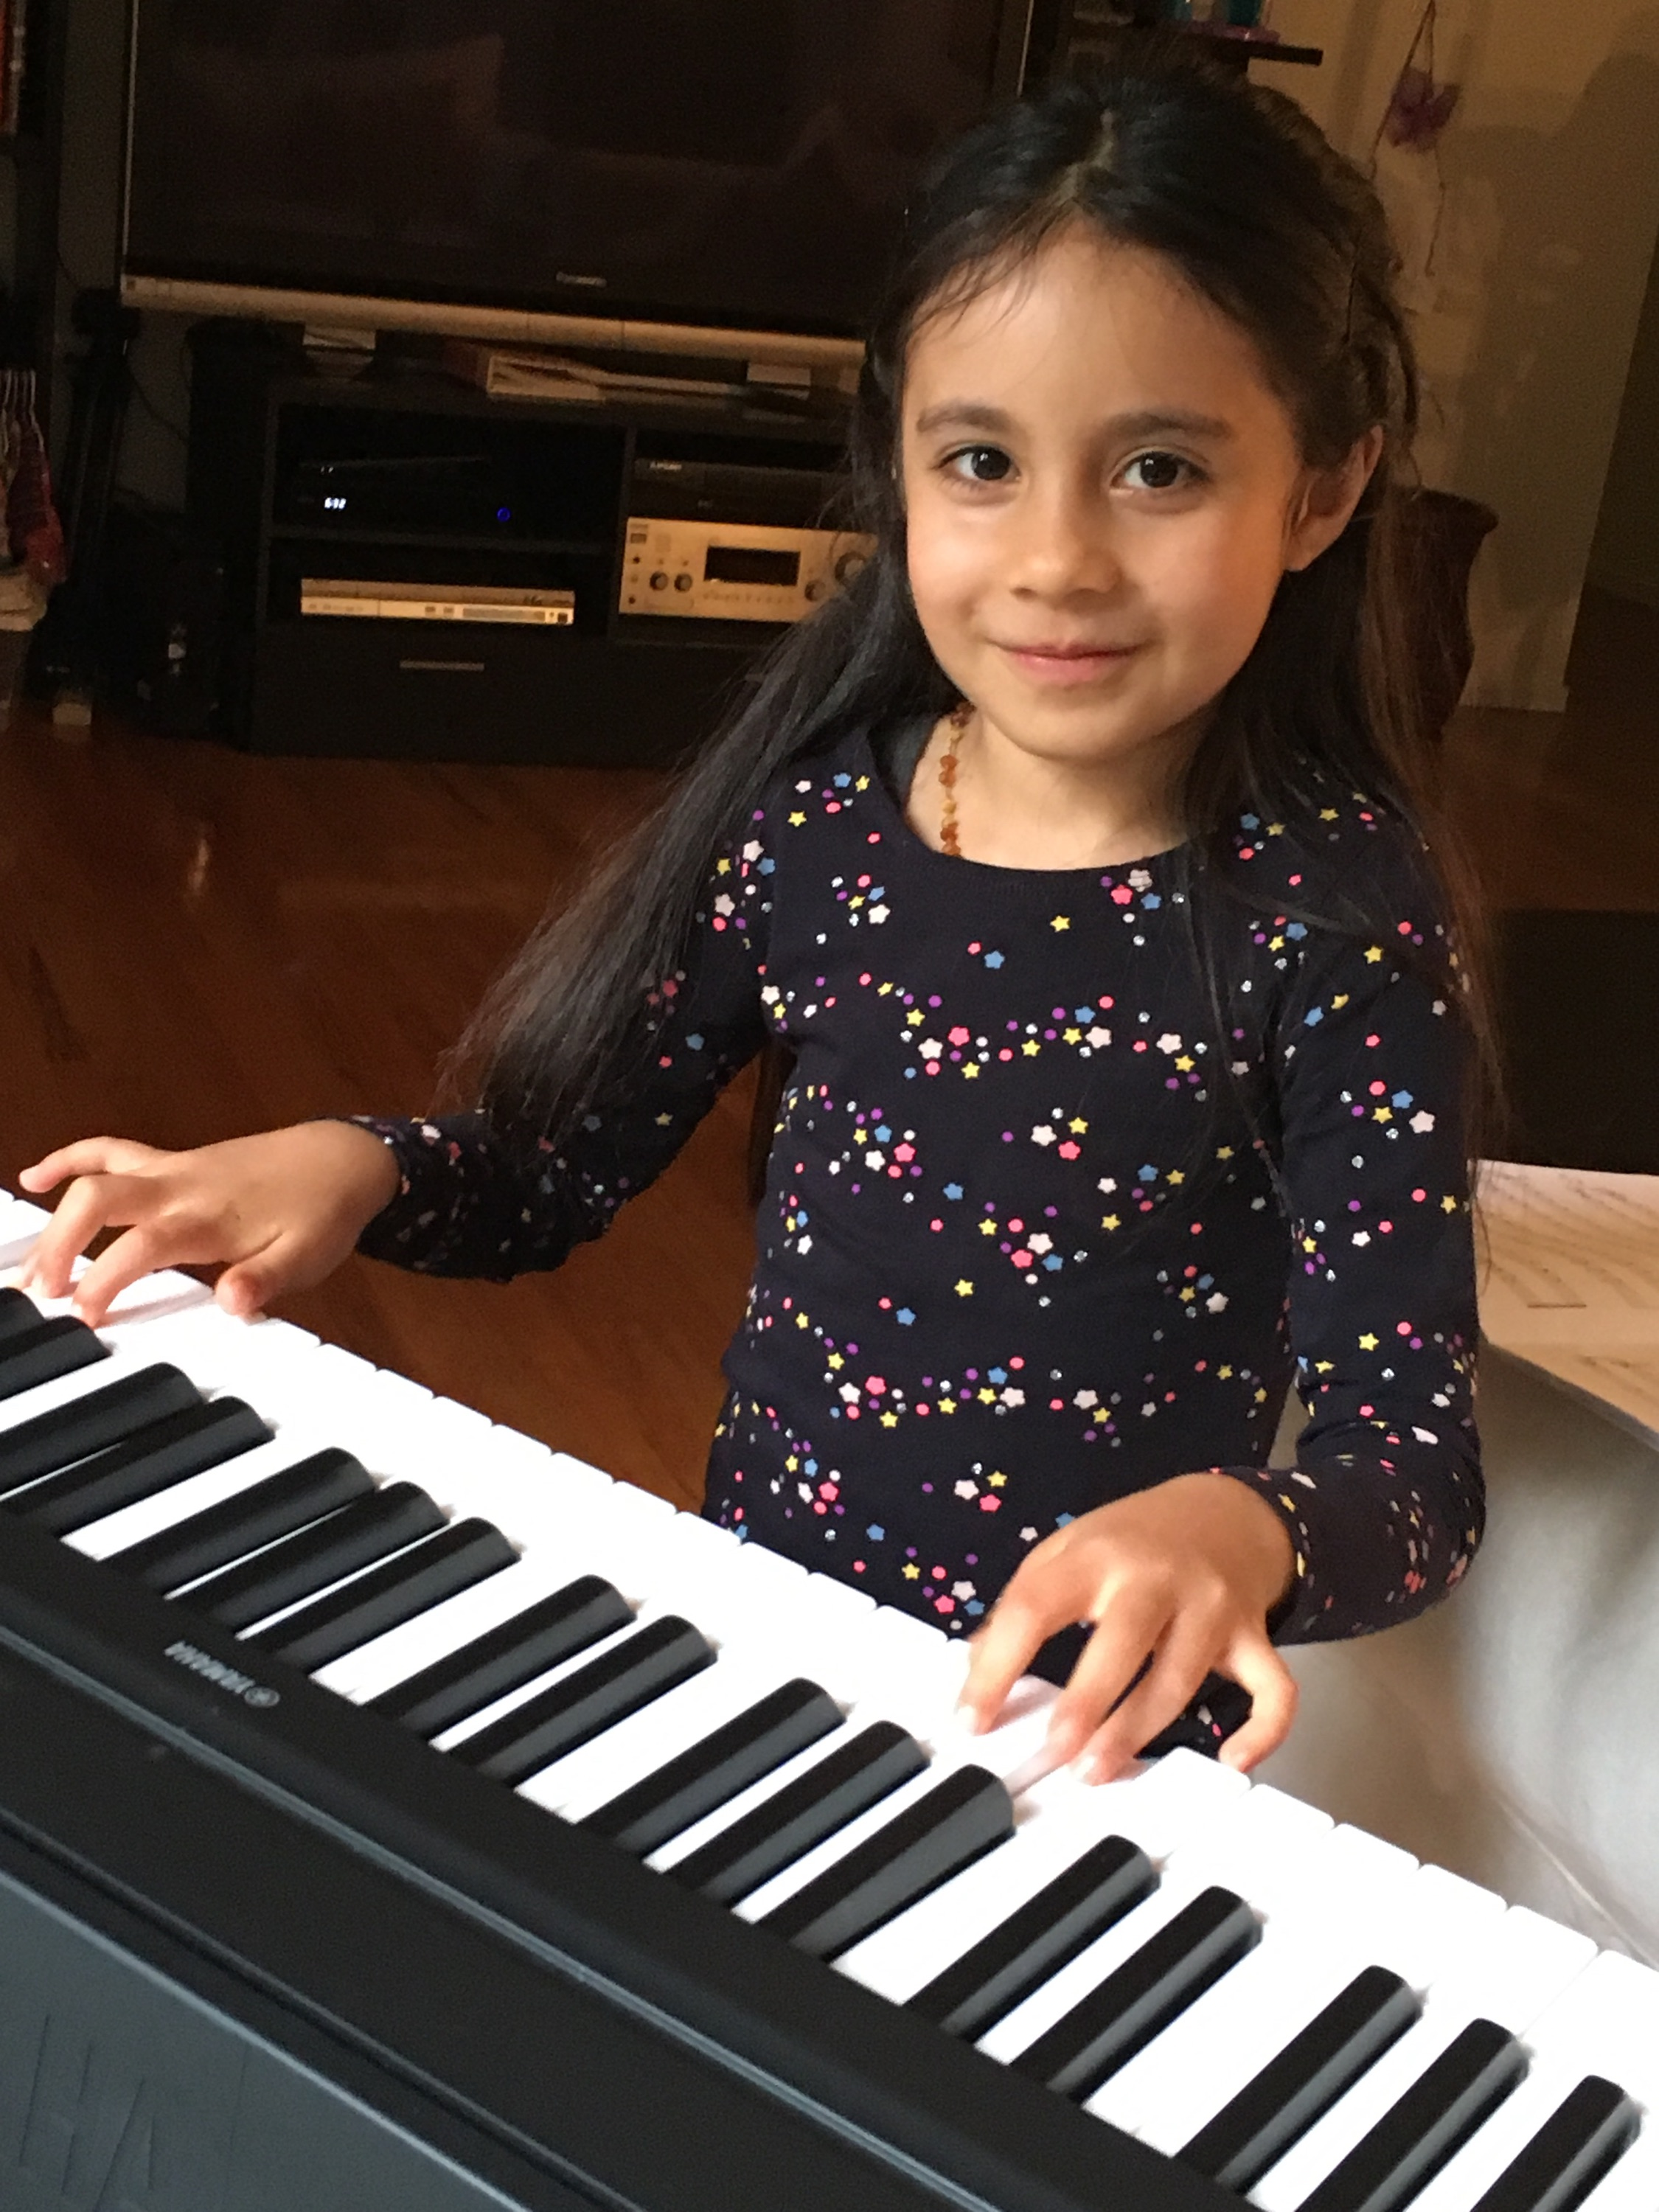 Alessandra practicing piano for her music lesson.